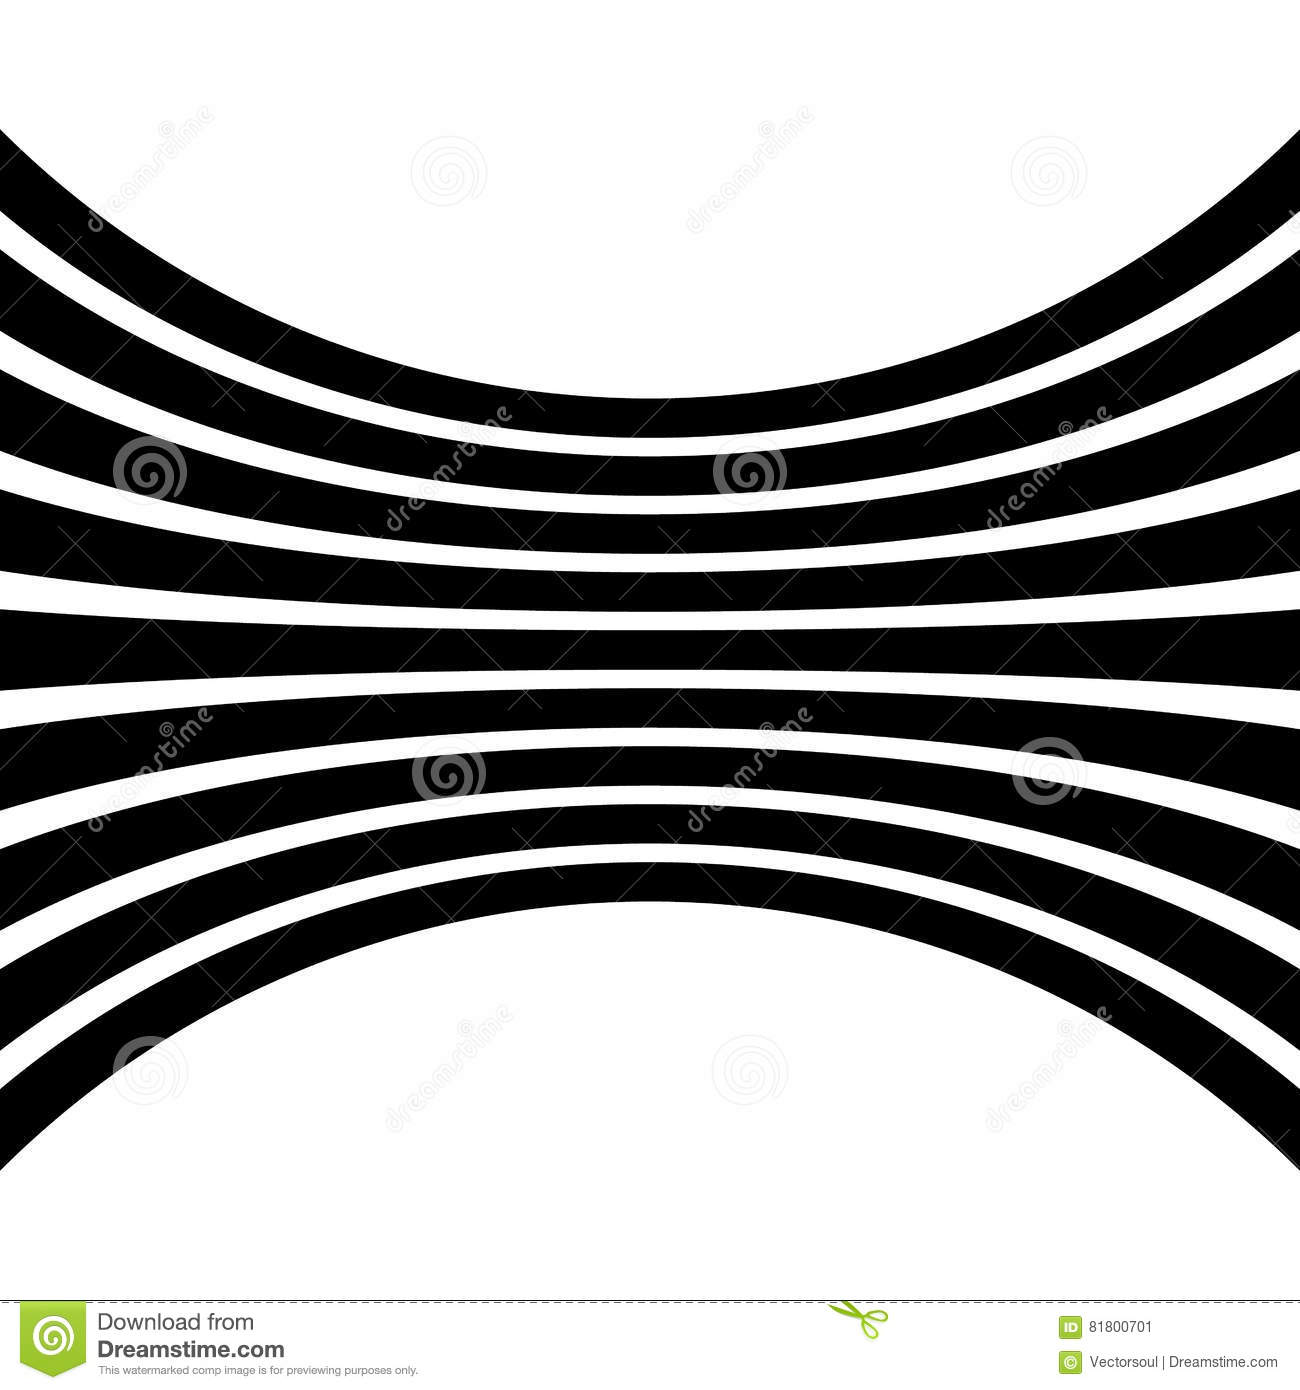 Lines with distortion effect isolated on white background. Geometric lines with deformation. Abstract monochrome element / patter